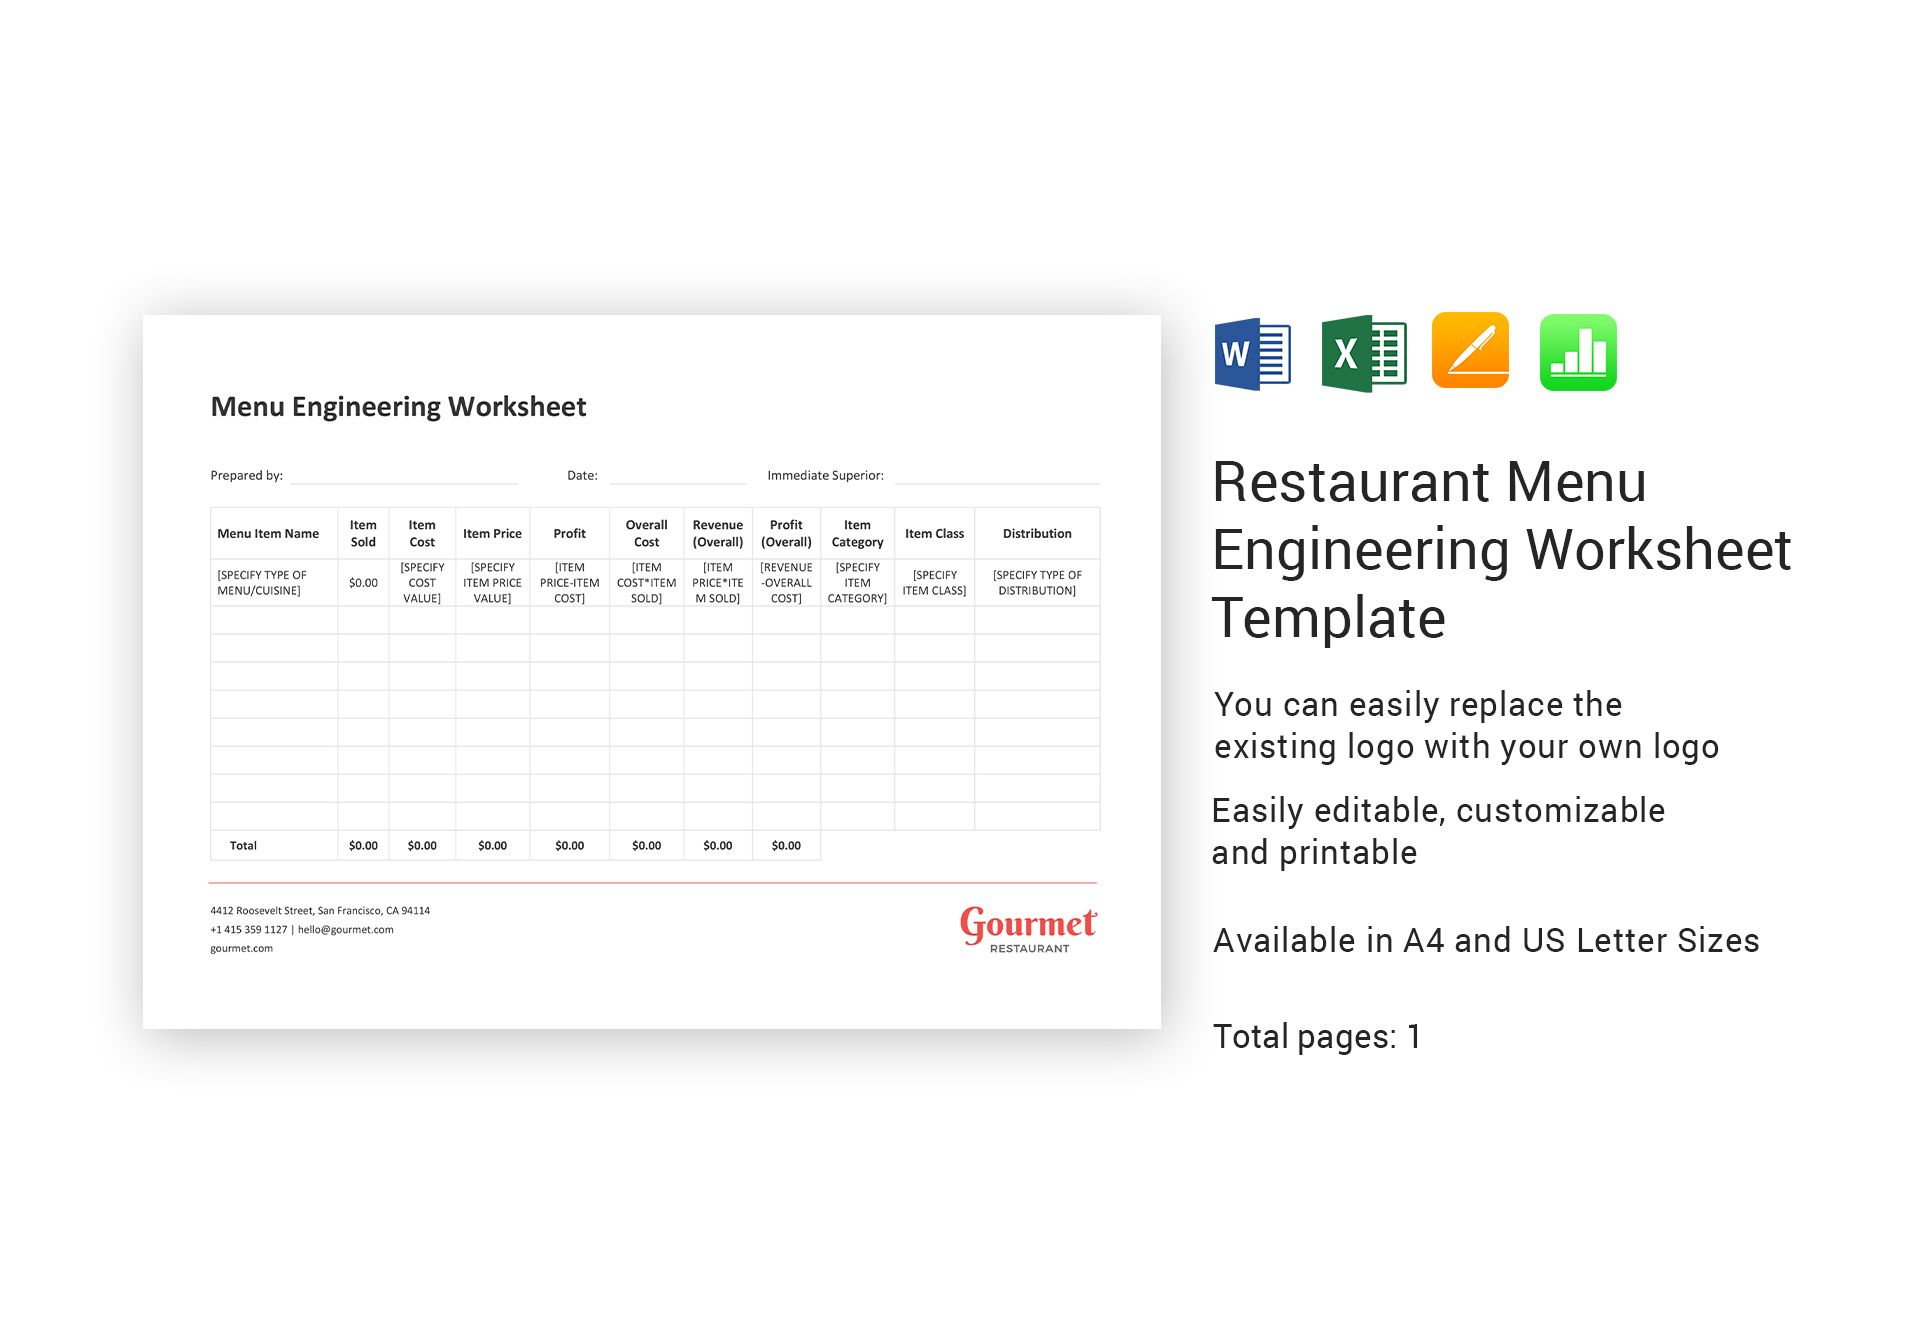 Restaurant Menu Engineering Worksheet Template In Word Excel Apple Pages Numbers